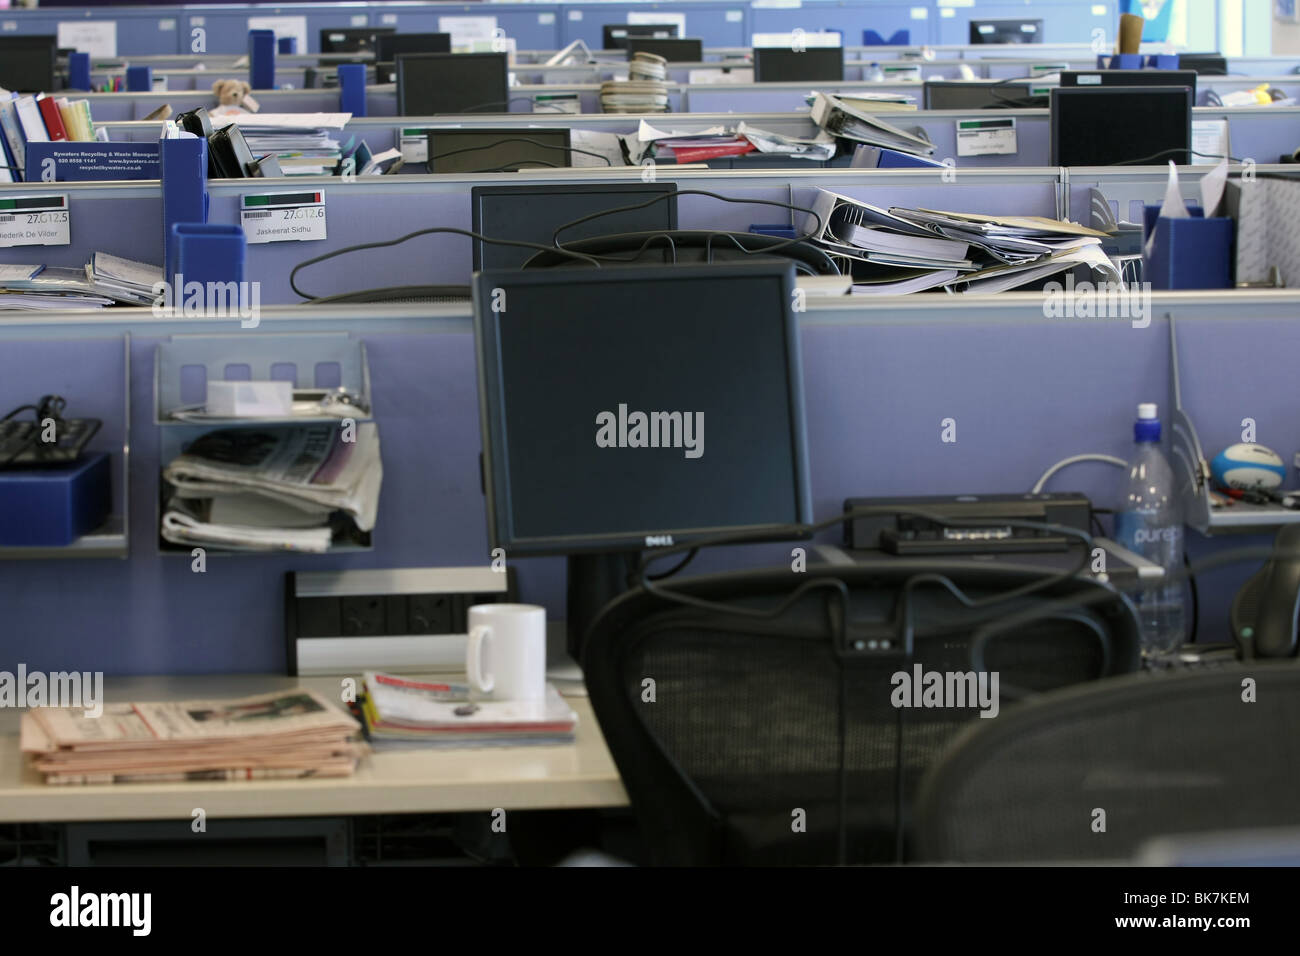 A view of part of an empty open plan bank head office on a bank holiday - Stock Image